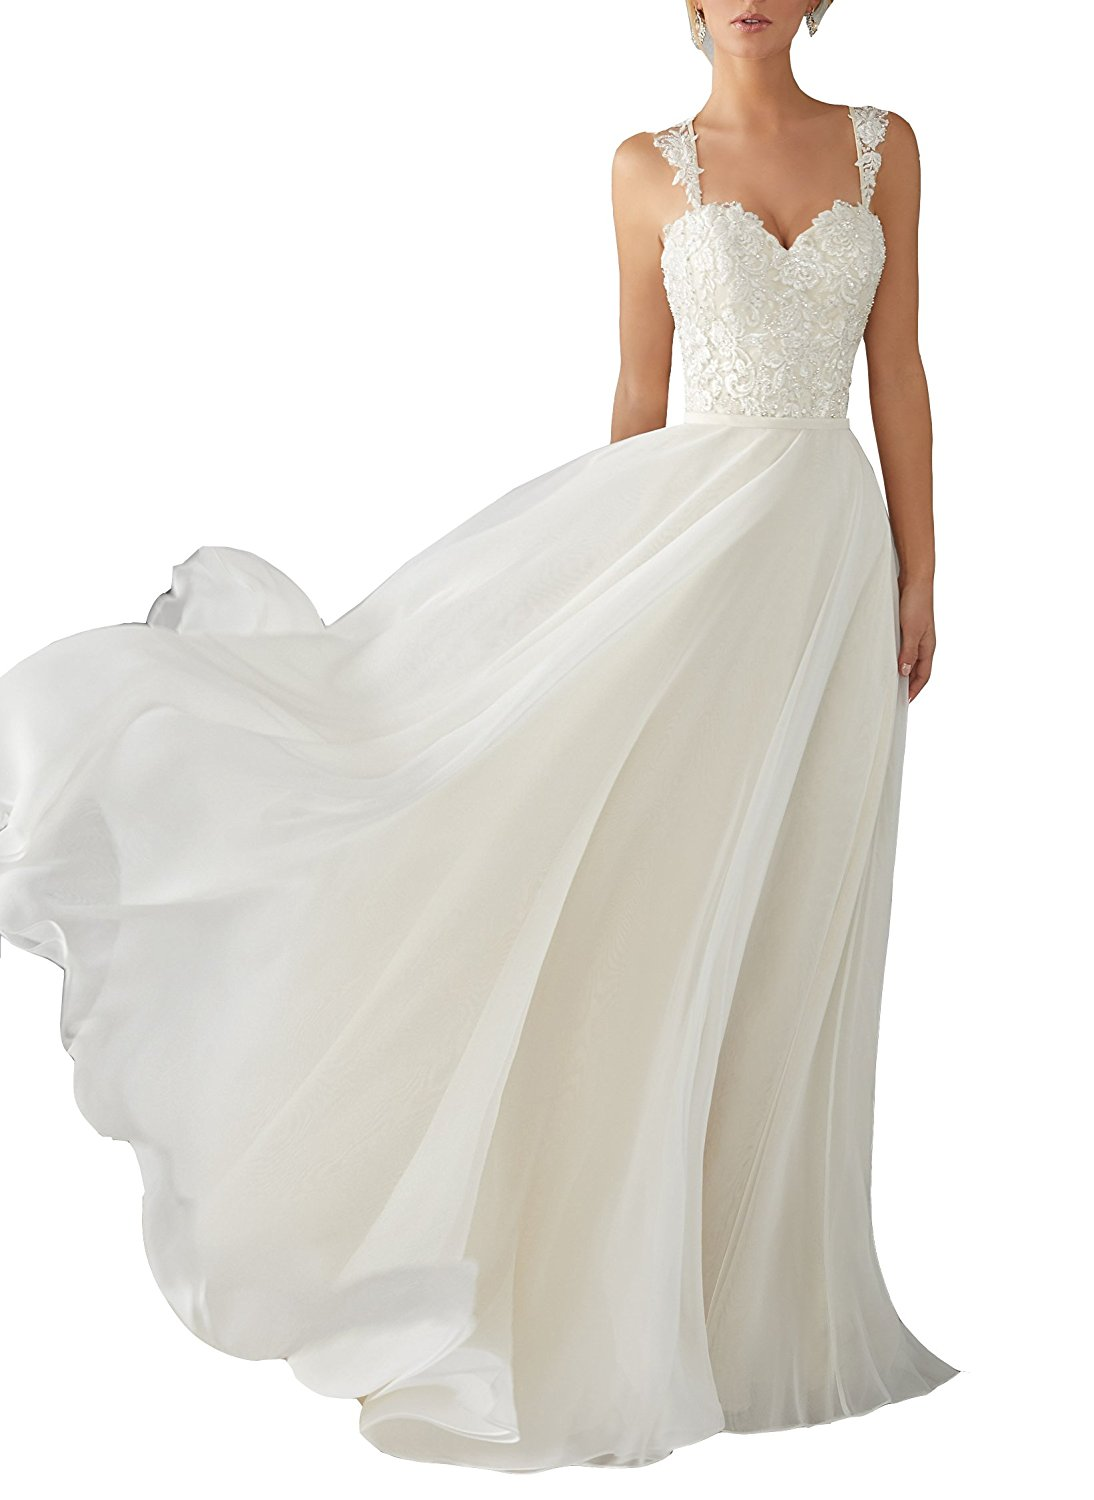 Lace Chiffon Destination Wedding Dress